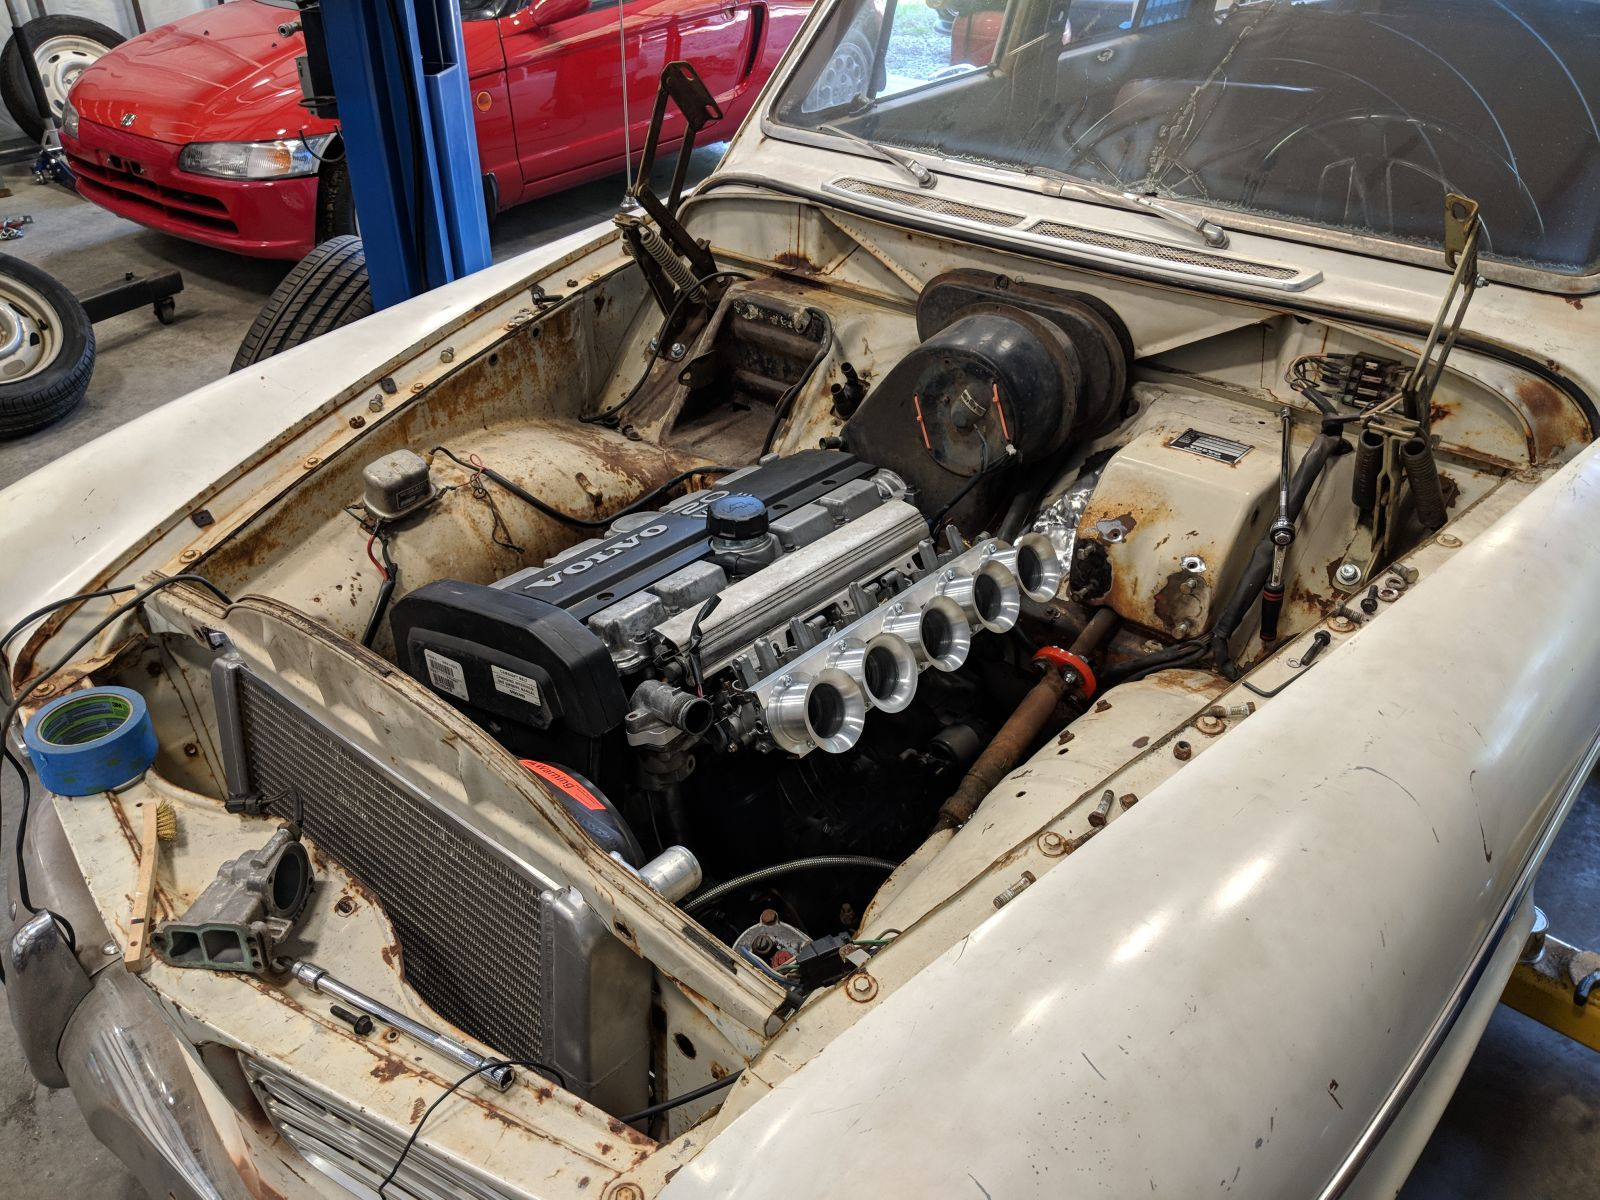 The Best Thing to Do With Your Freshly Engine Swapped 1966